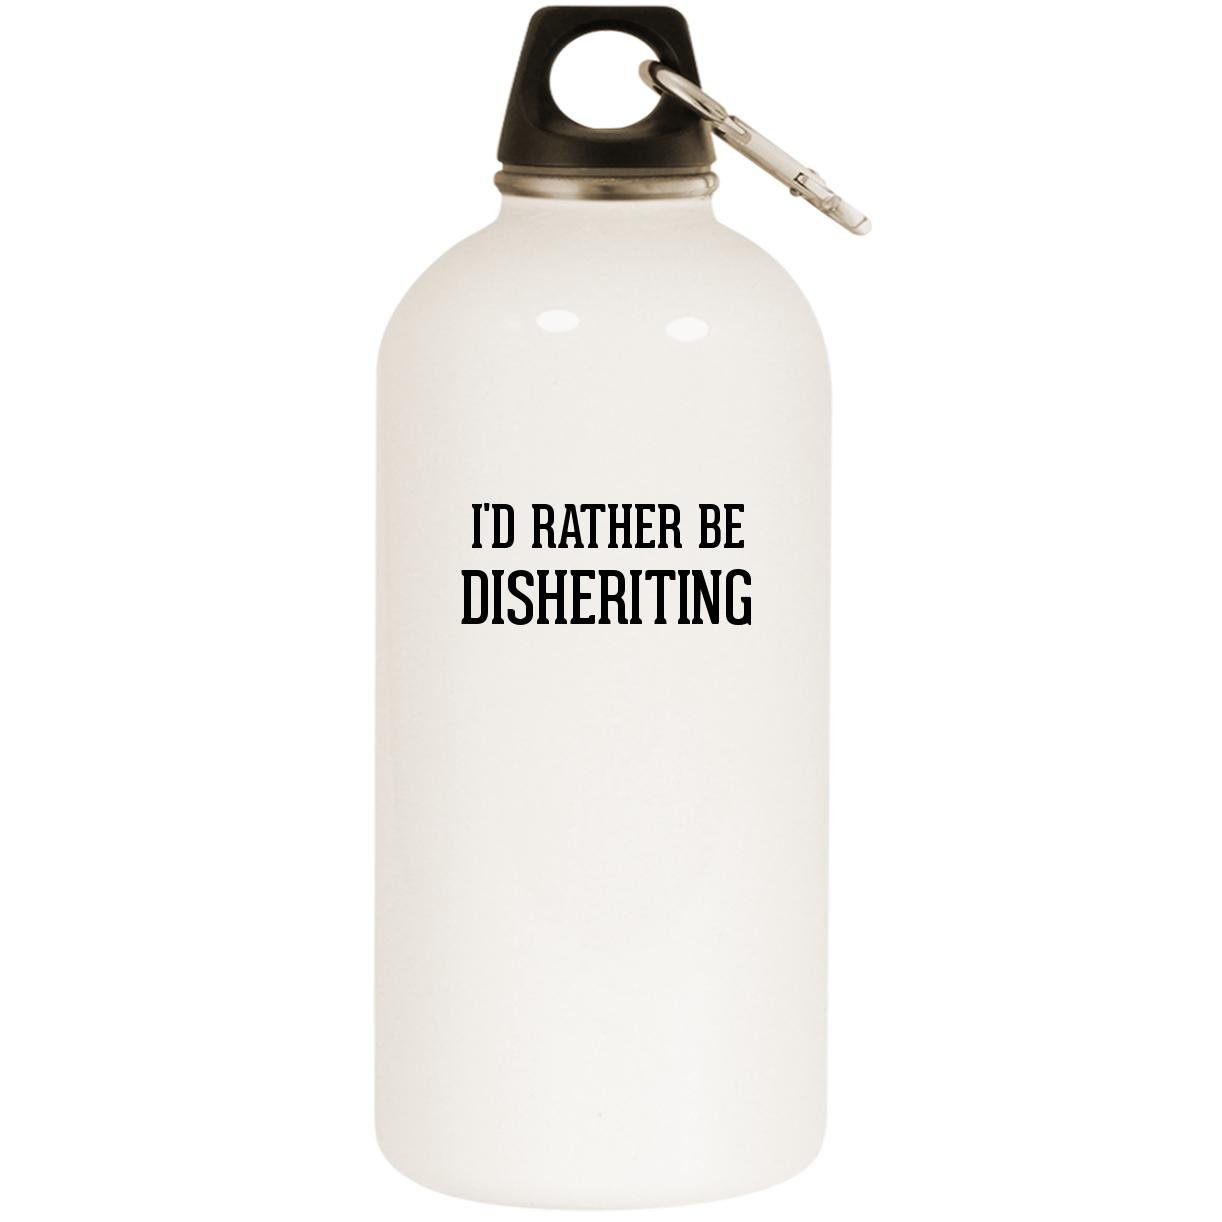 I'd Rather Be DISHERITING - White 20oz Stainless Steel Water Bottle with Carabiner